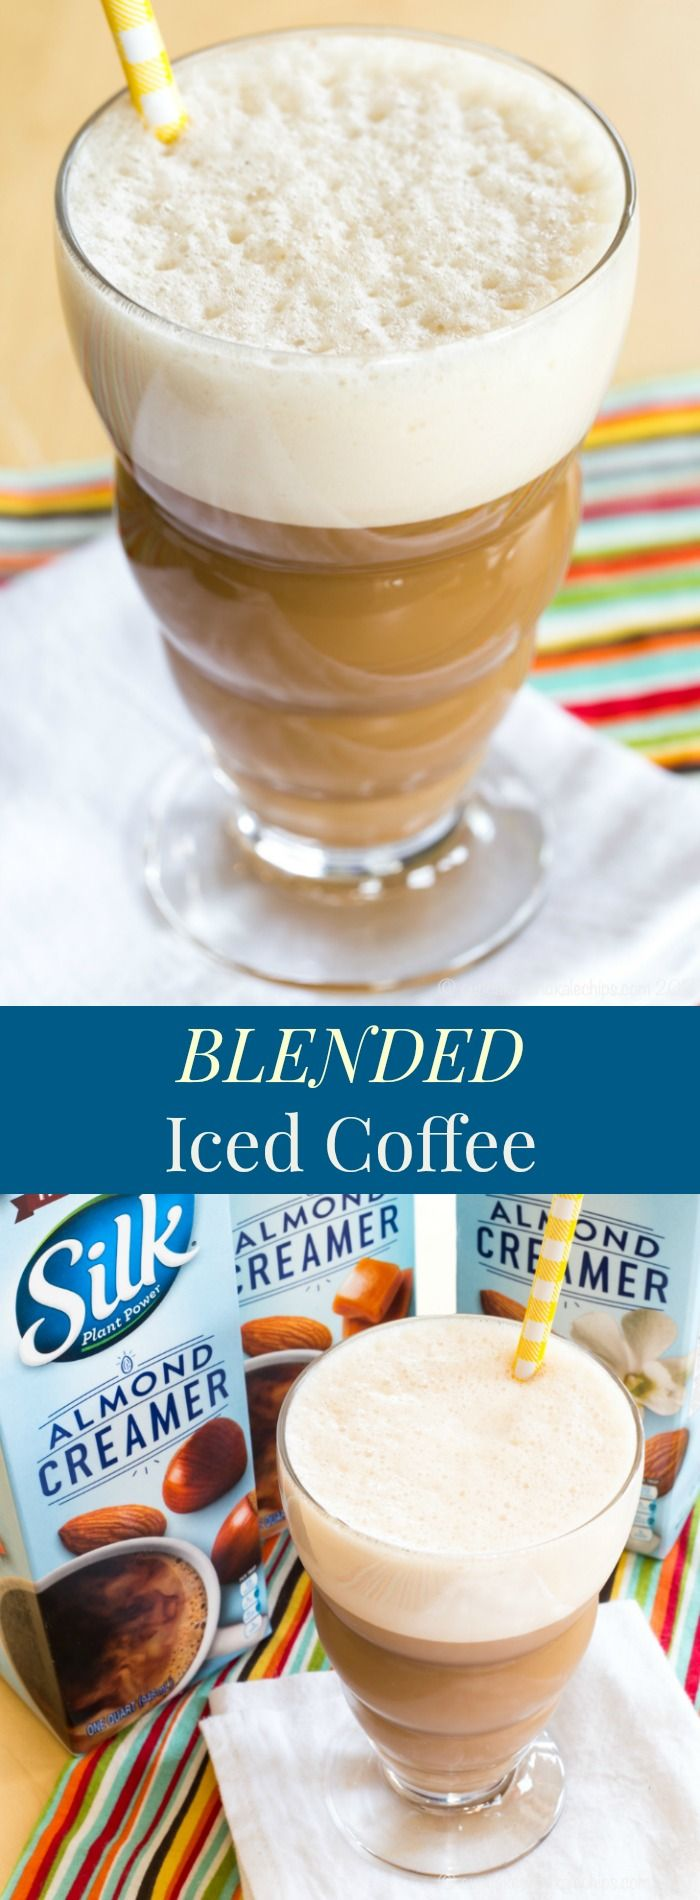 Blended Iced Coffee - a simple hack brings the coffee shop to your kitchen. Customize it with your favorite @lovemysilk Dairy Free Creamers. #ad